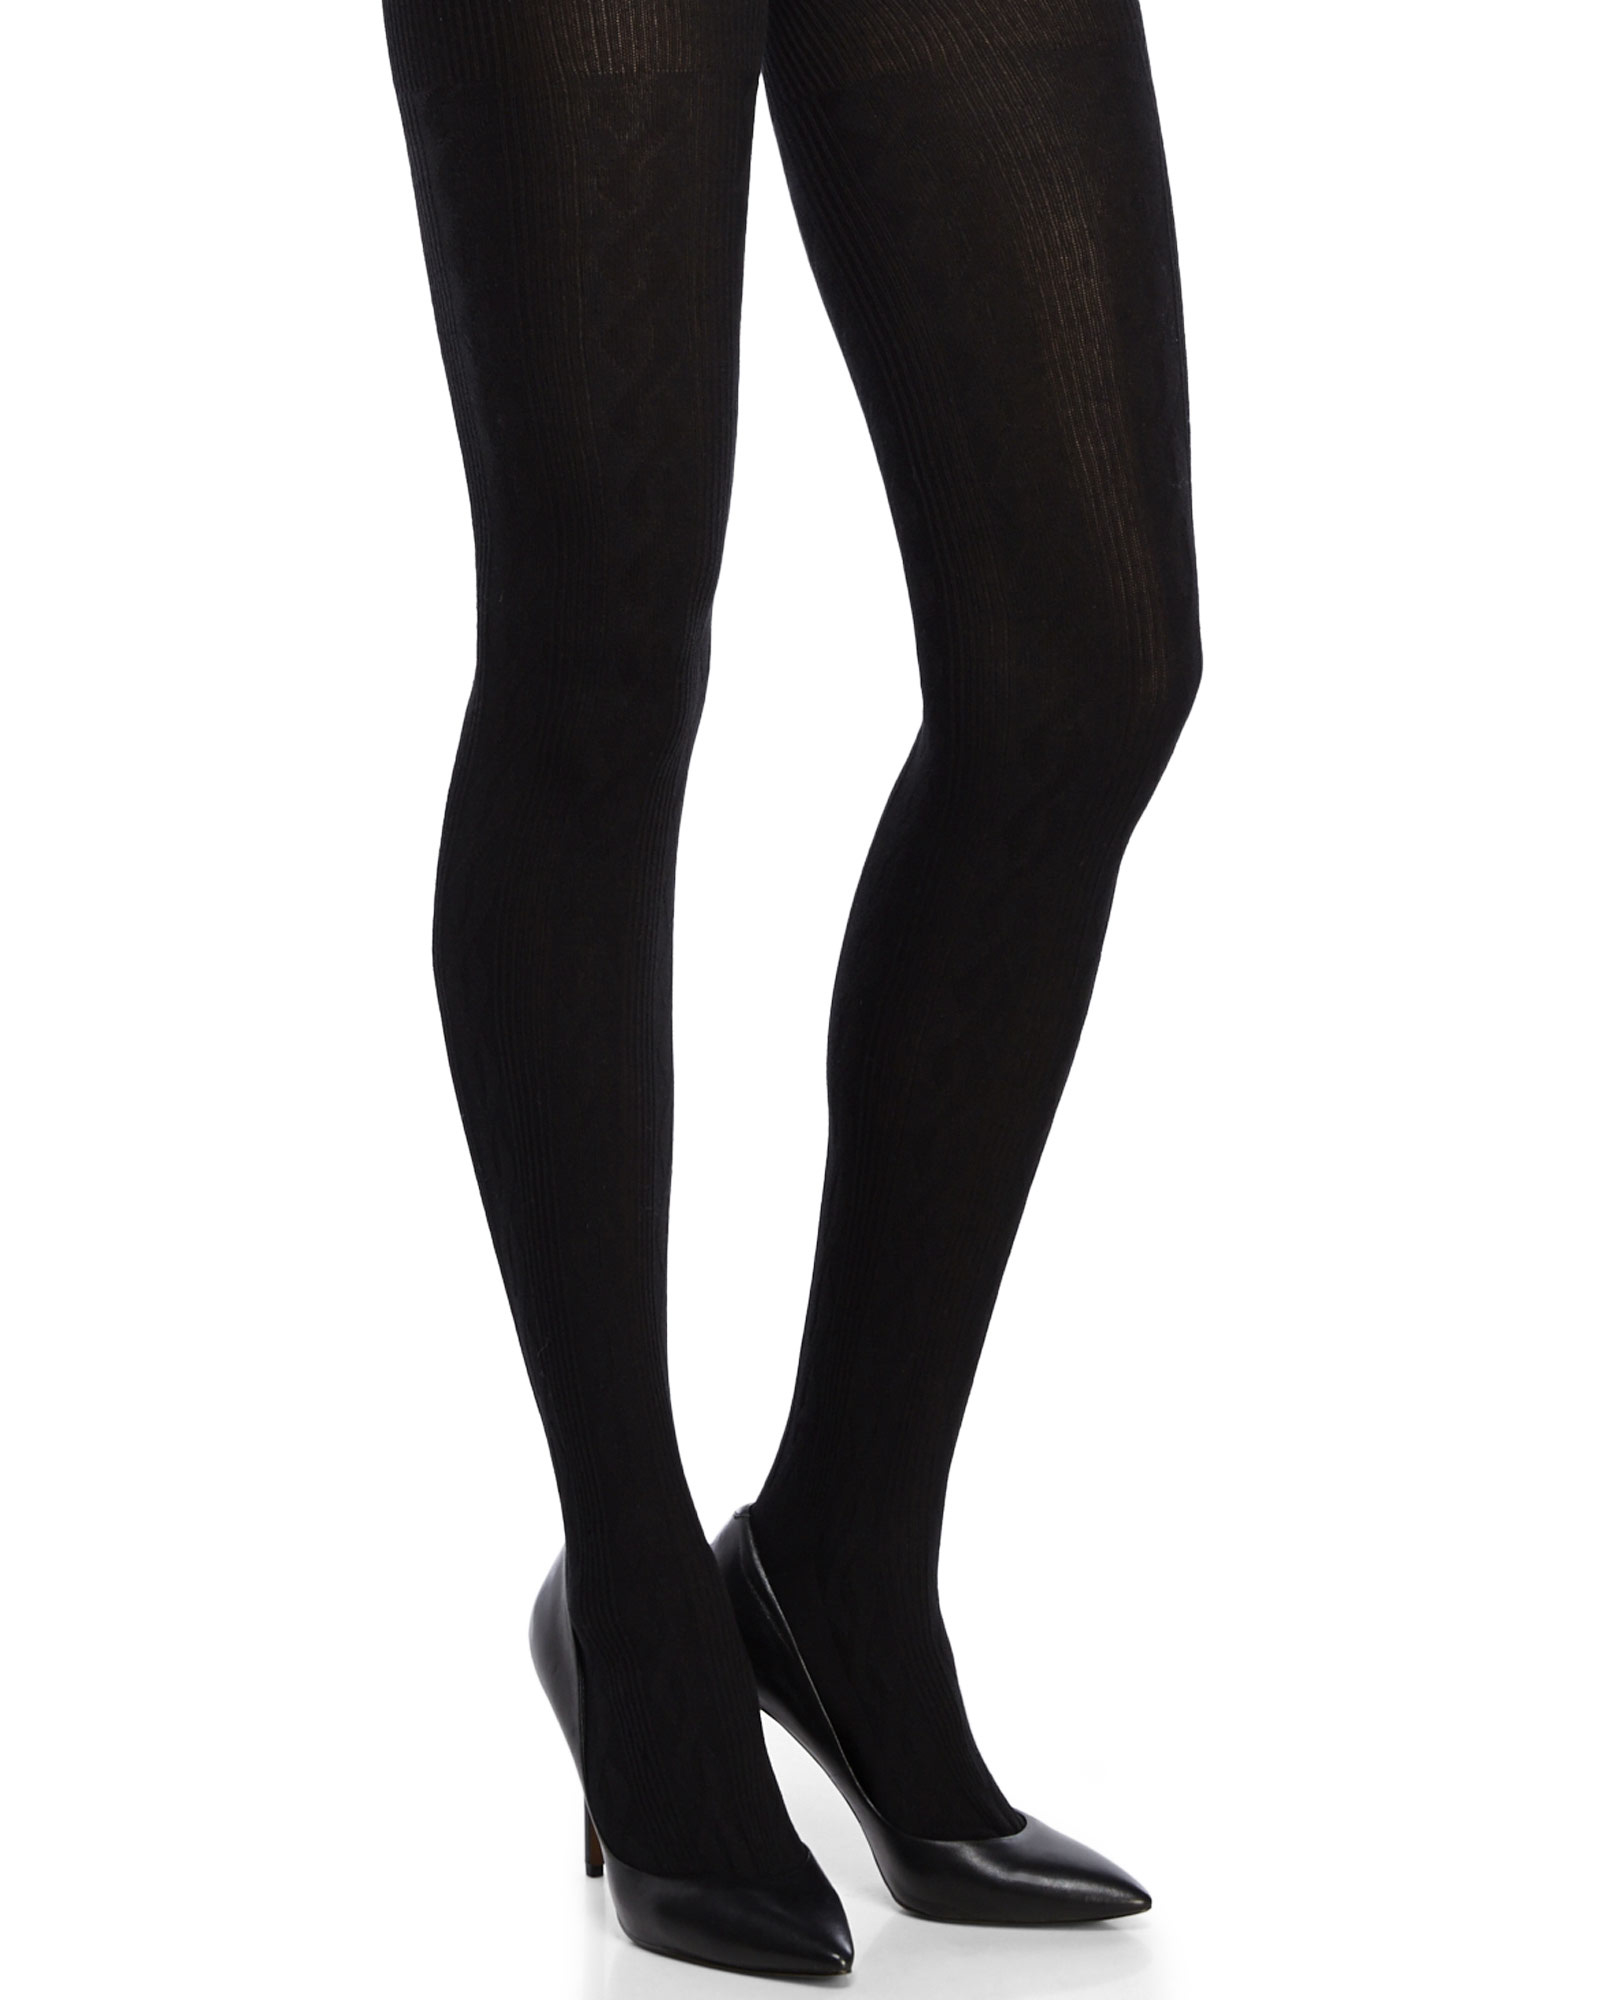 069b4ab54aacf Gallery. Previously sold at: Century 21 · Women's Black Tights Women's Cable  Knit Sweaters